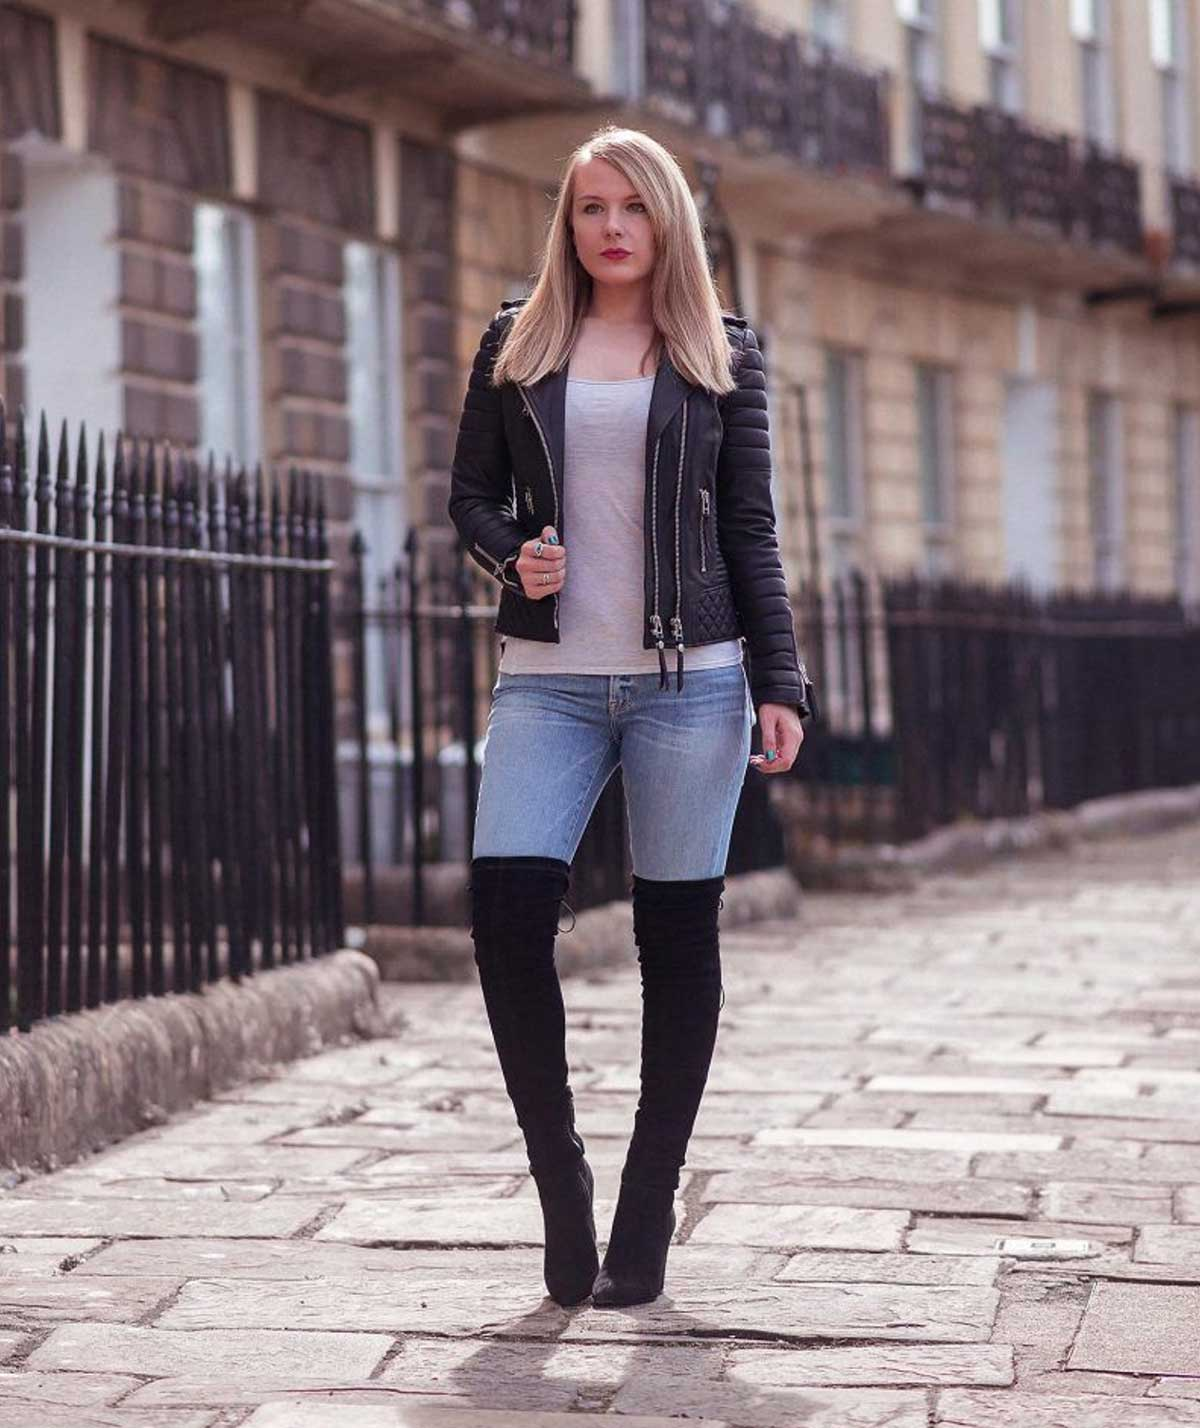 Leather coat and knee-high boots